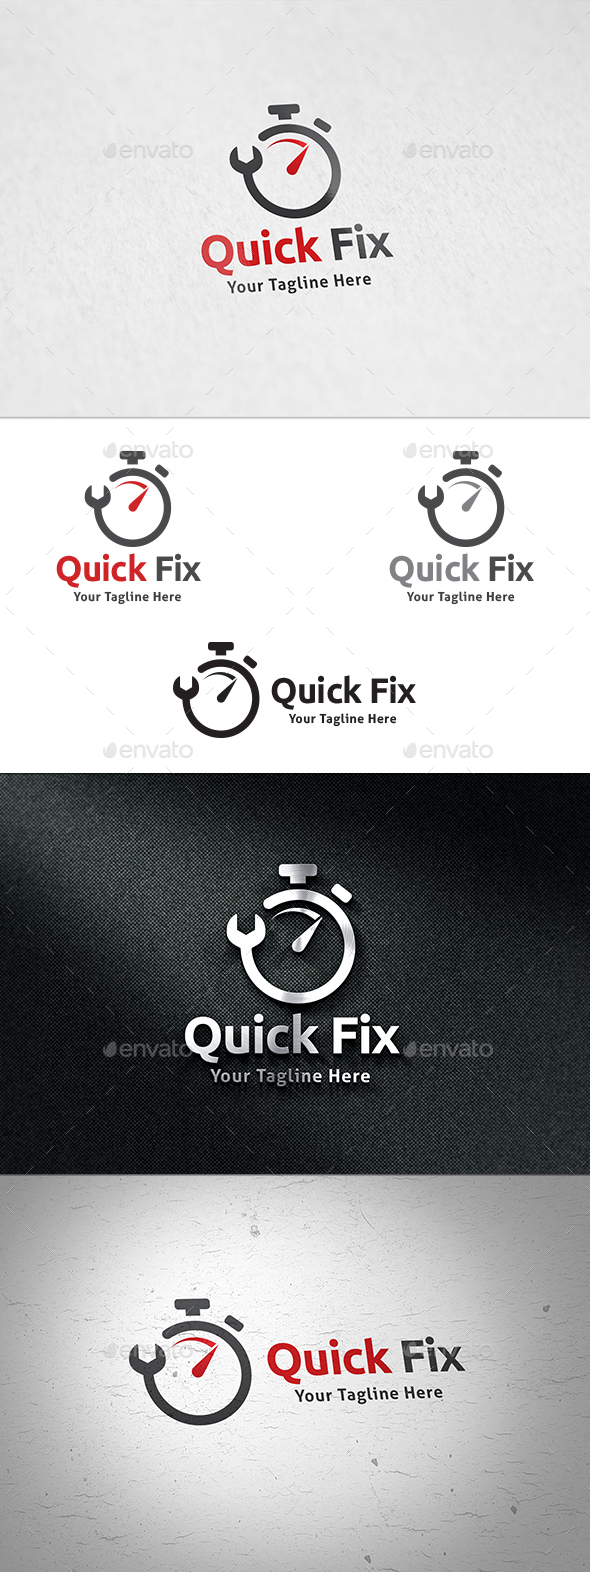 Quick Fix Logo - Objects Logo Templates